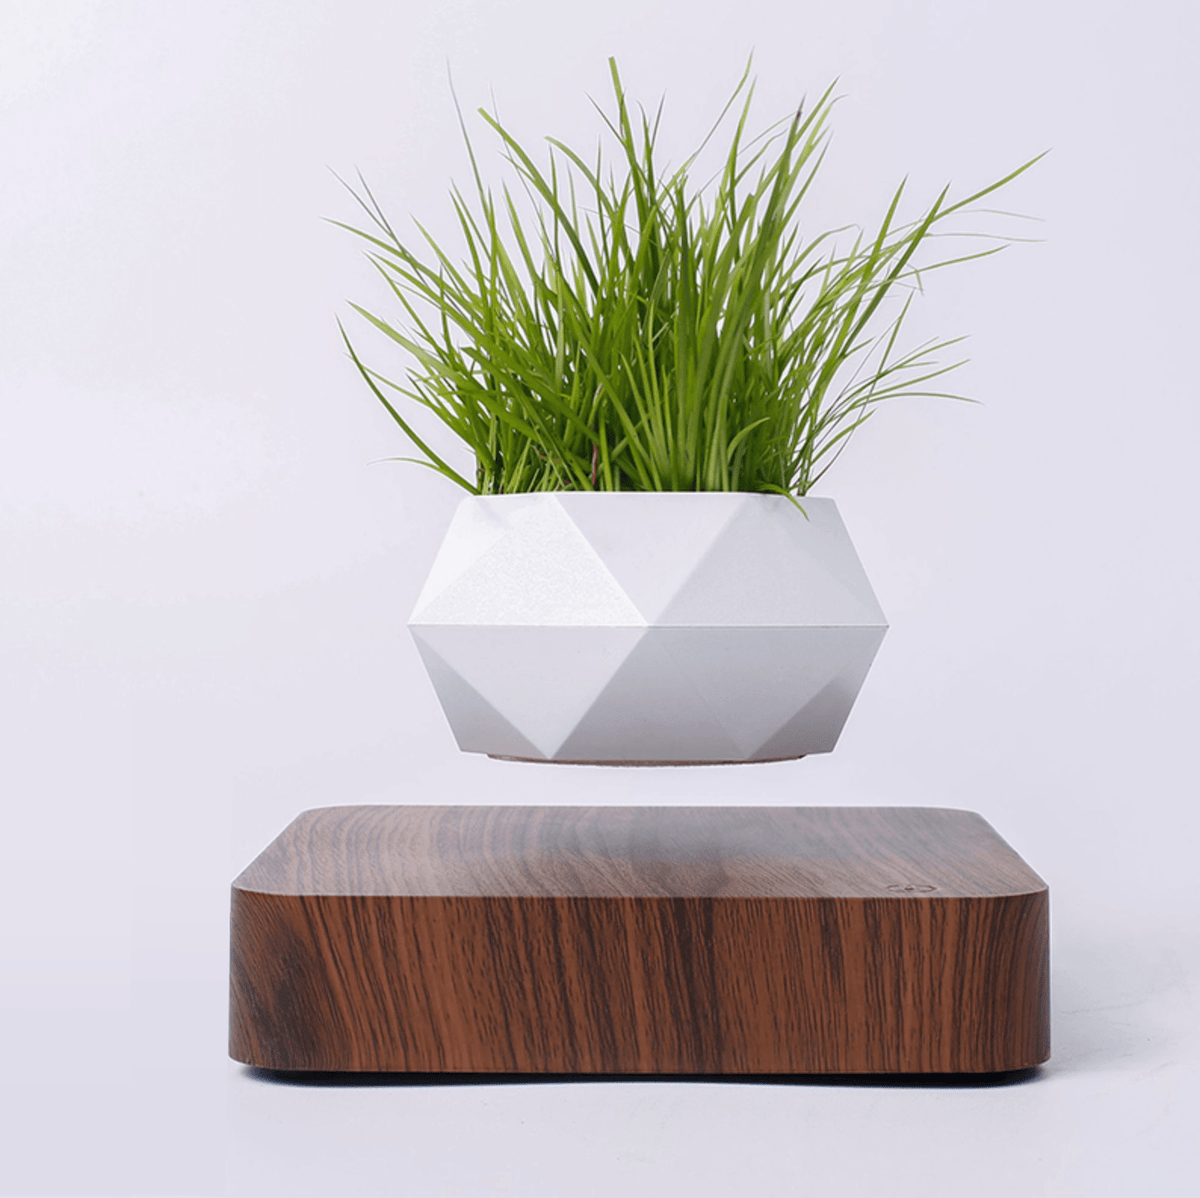 Magnetic Floating Levitating Plant